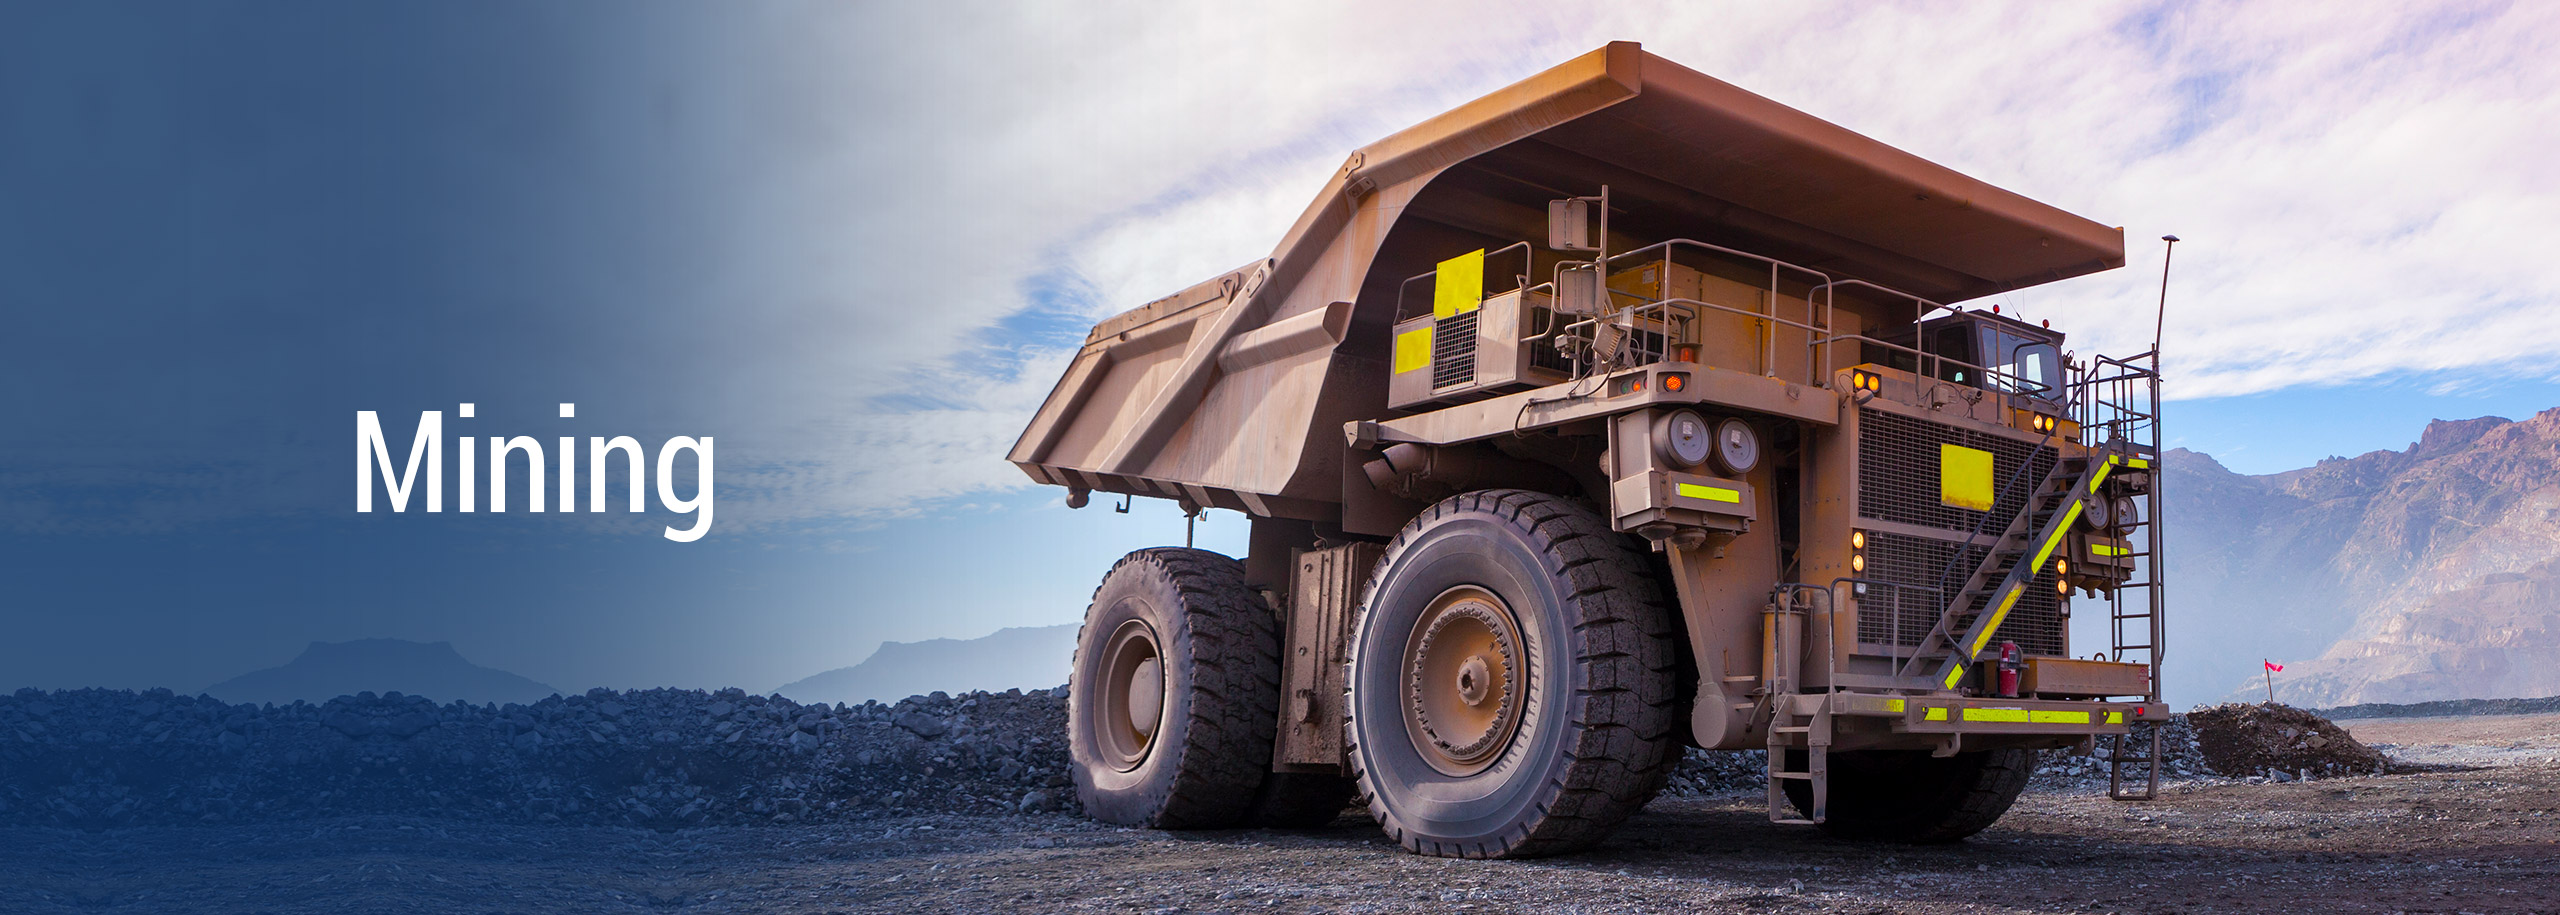 Mining Fire Protection